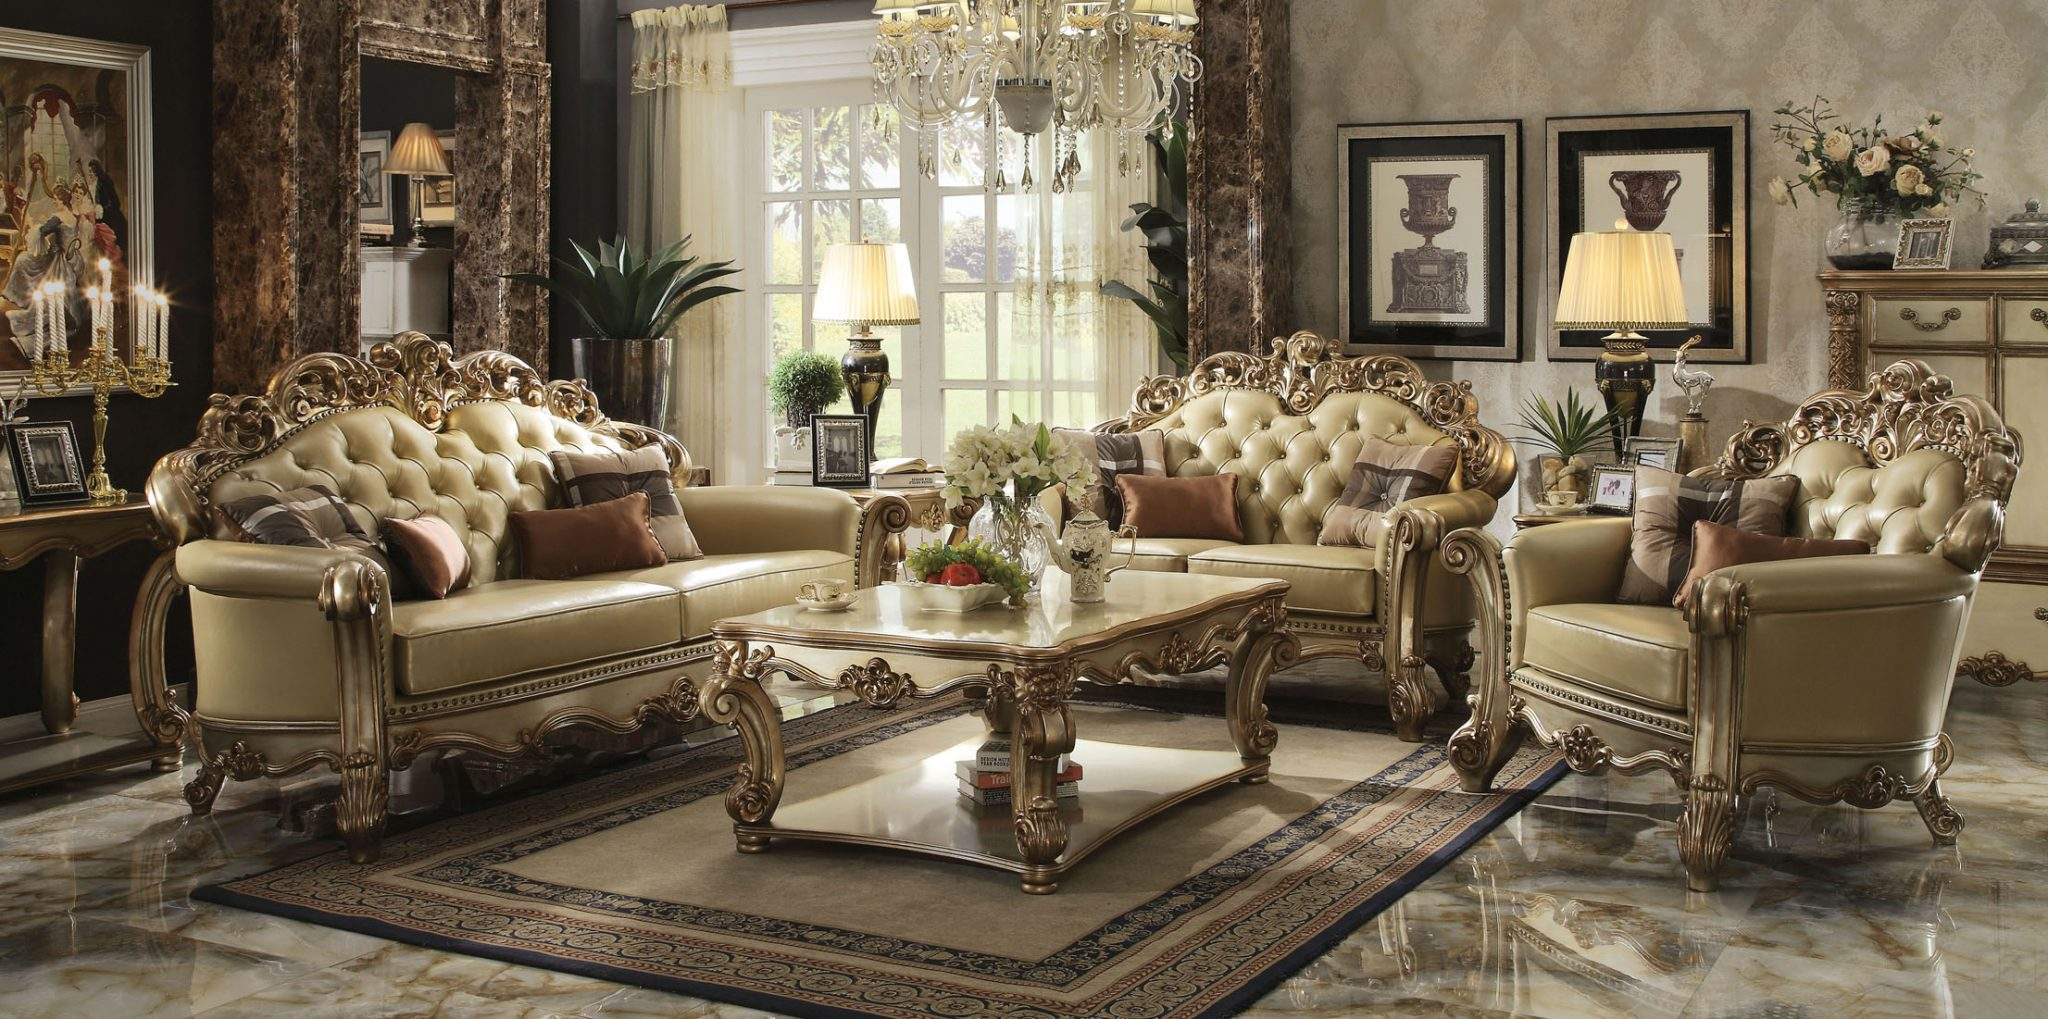 Gold patina vendome royal living set by acme furniture - Victorian living room set for sale ...